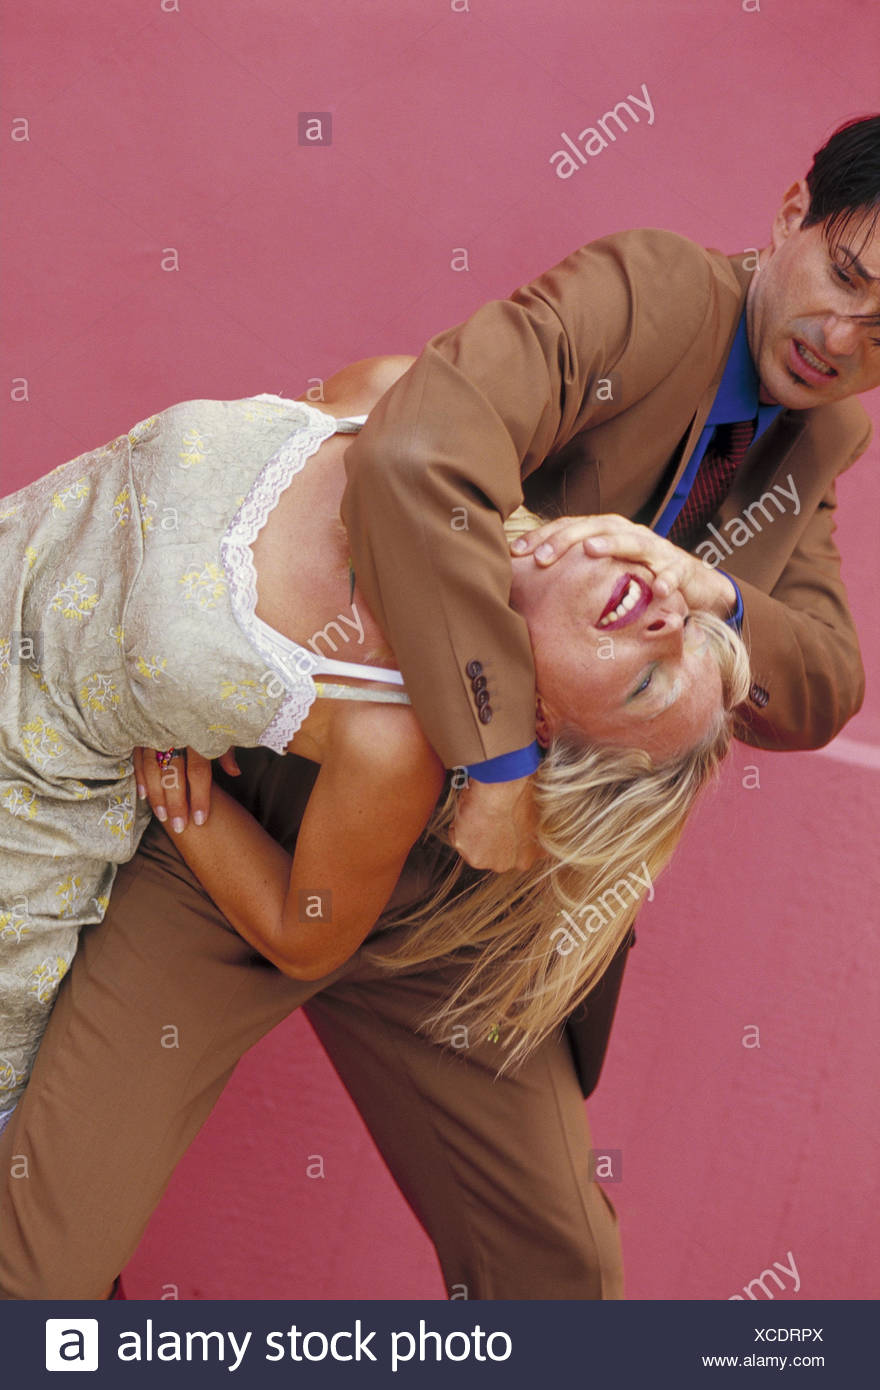 Couple, young, fight, use force adults, intentionally, power, brutality, brutally, cruelly, cruelty, violence, personal injury, maltreatment, intemperance, aggression, aggressiveness, hostage, kidnapping, taking hostages - Stock Image